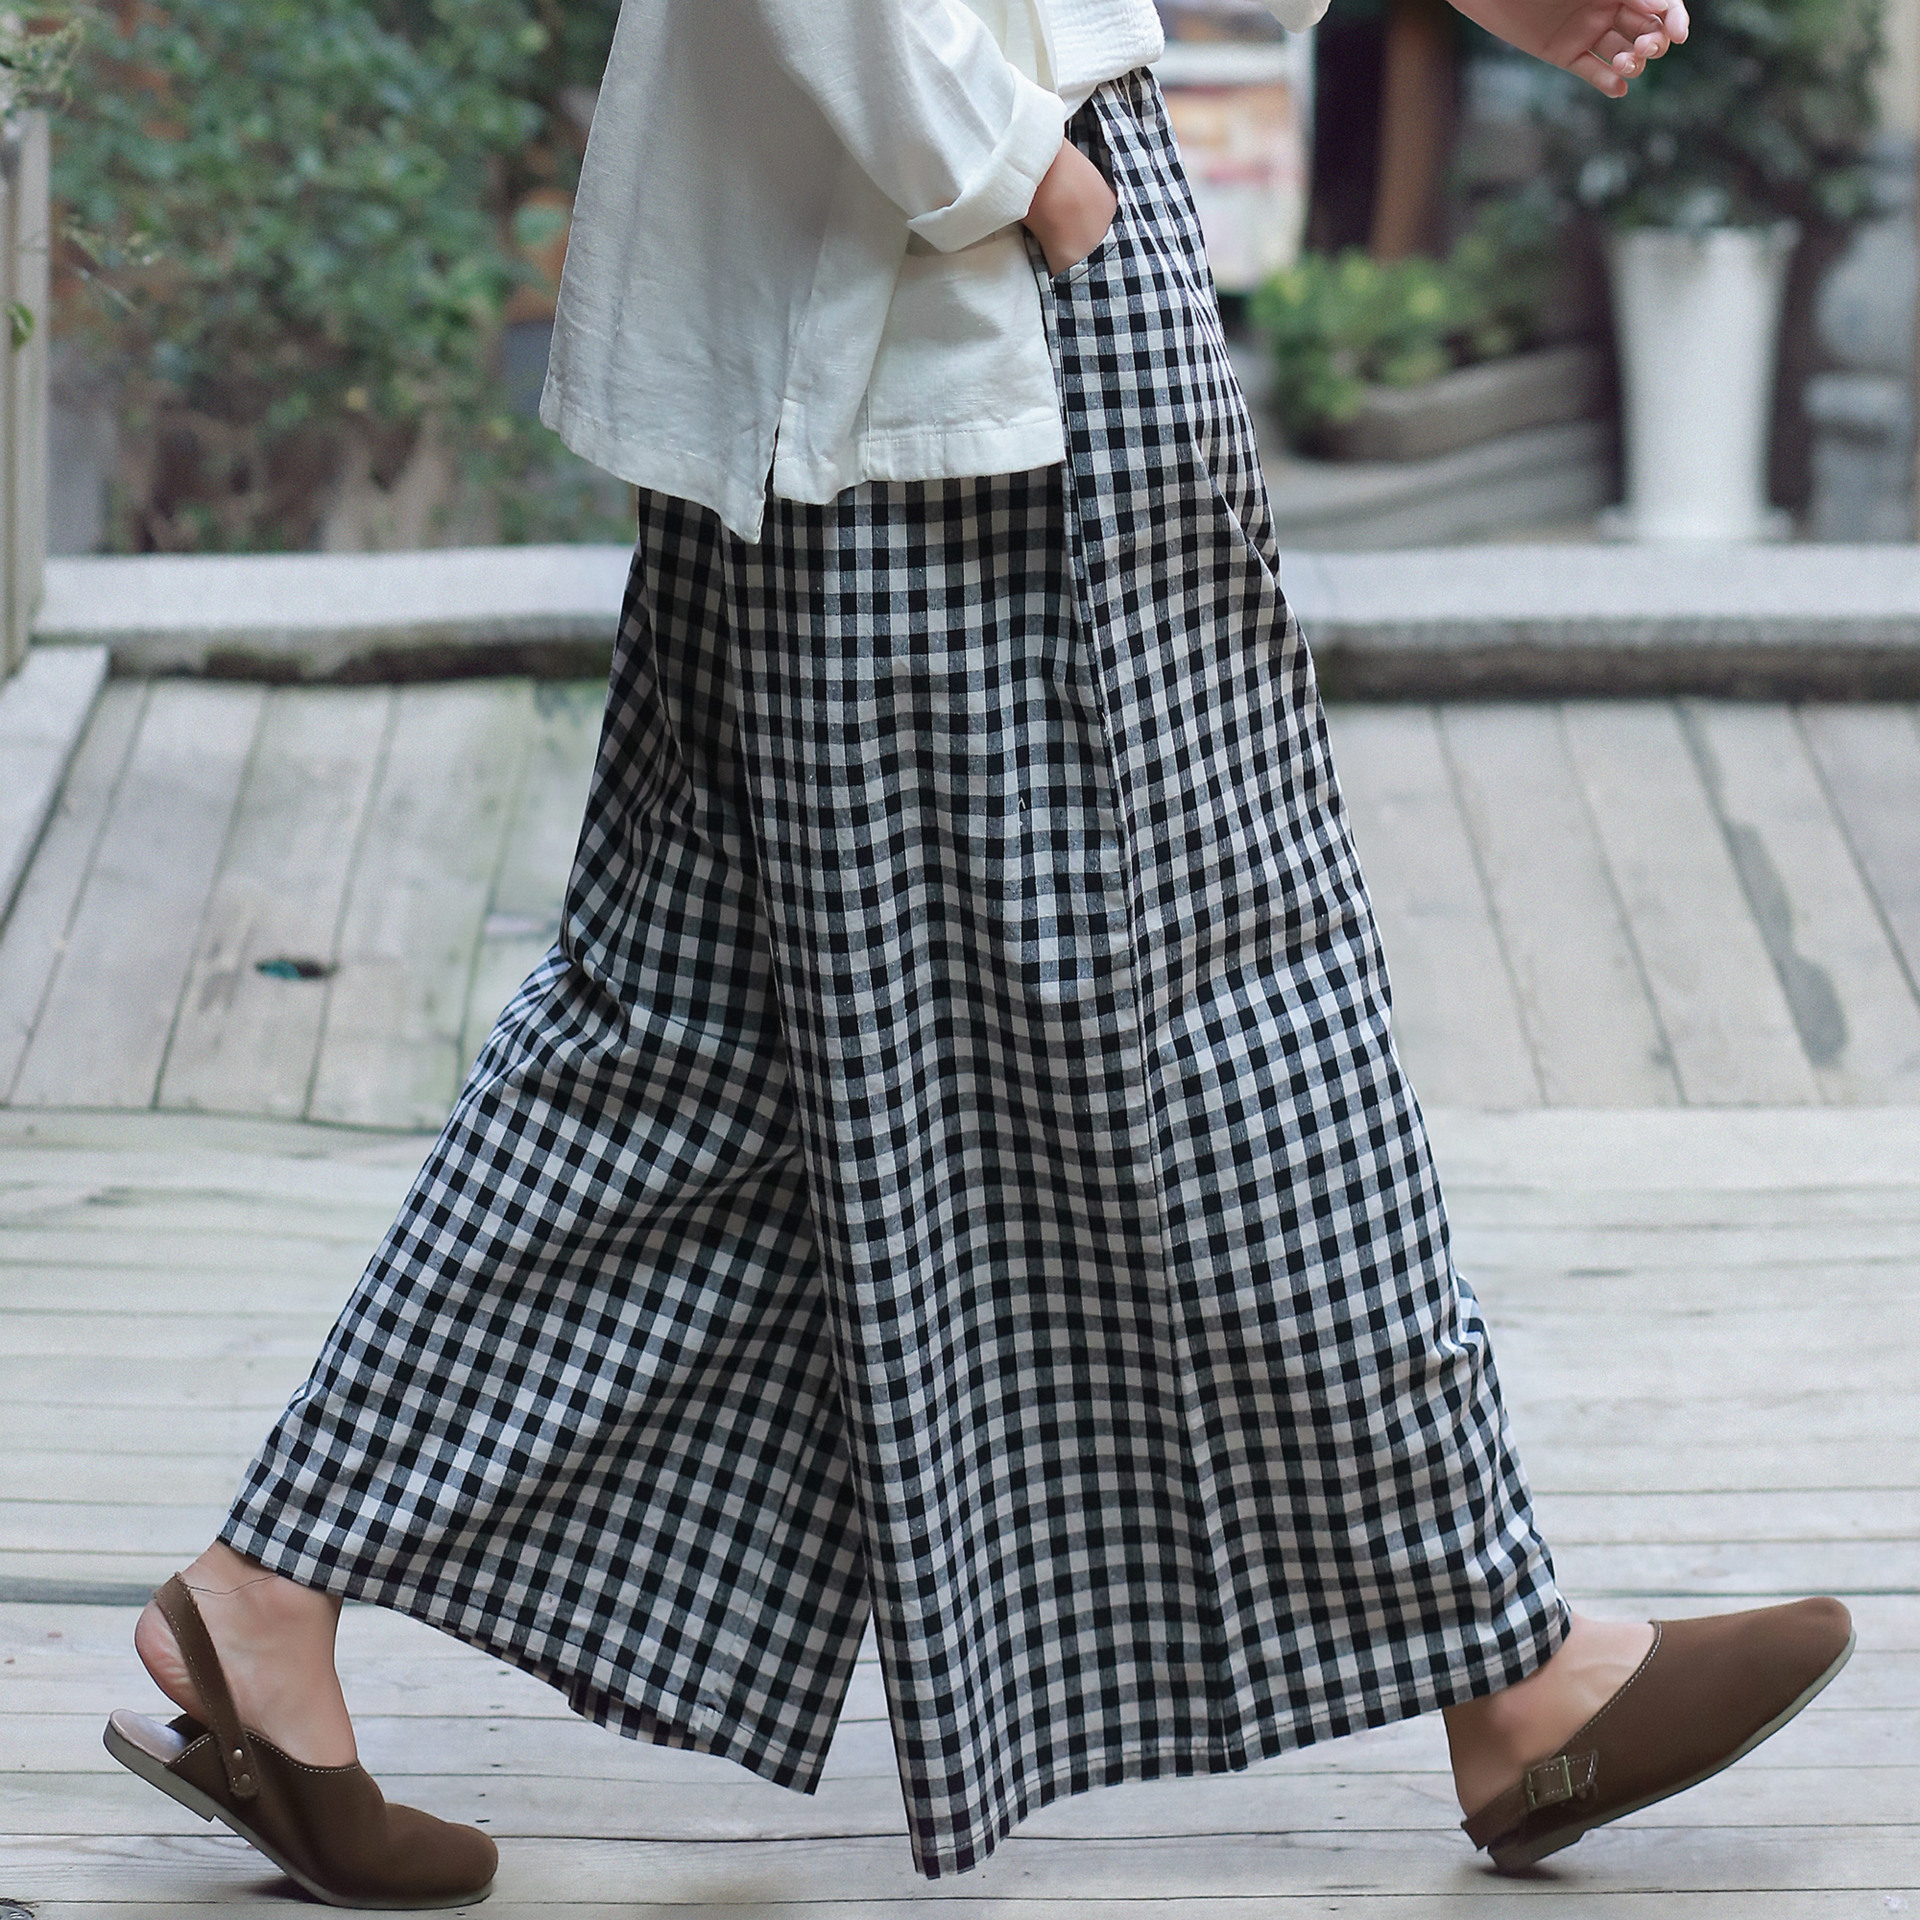 New spring Autumn women plaid pants cotton linen wide pants culottes loose lattice trousers women pantalon